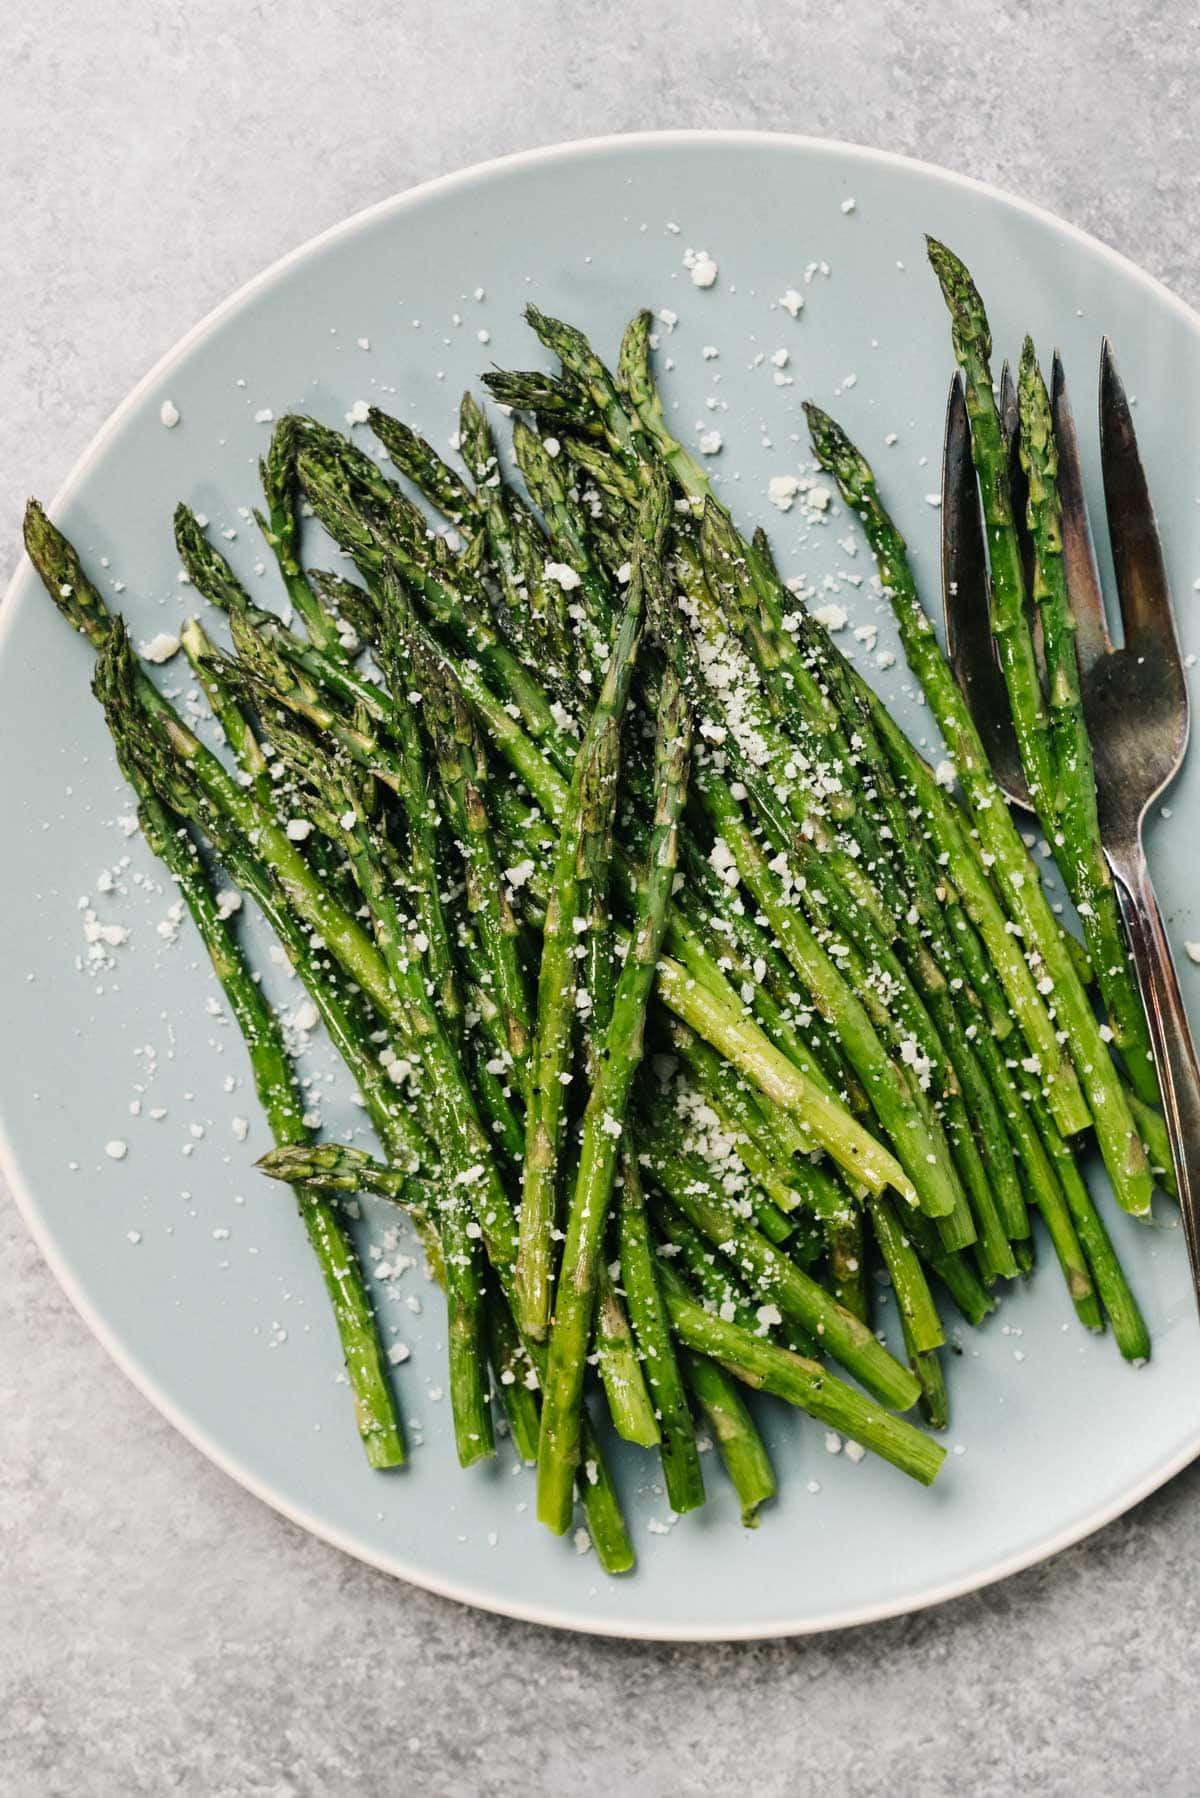 Roasted asparagus spears on a blue plate, garnished with grated parmesan cheese, with a silver serving fork.